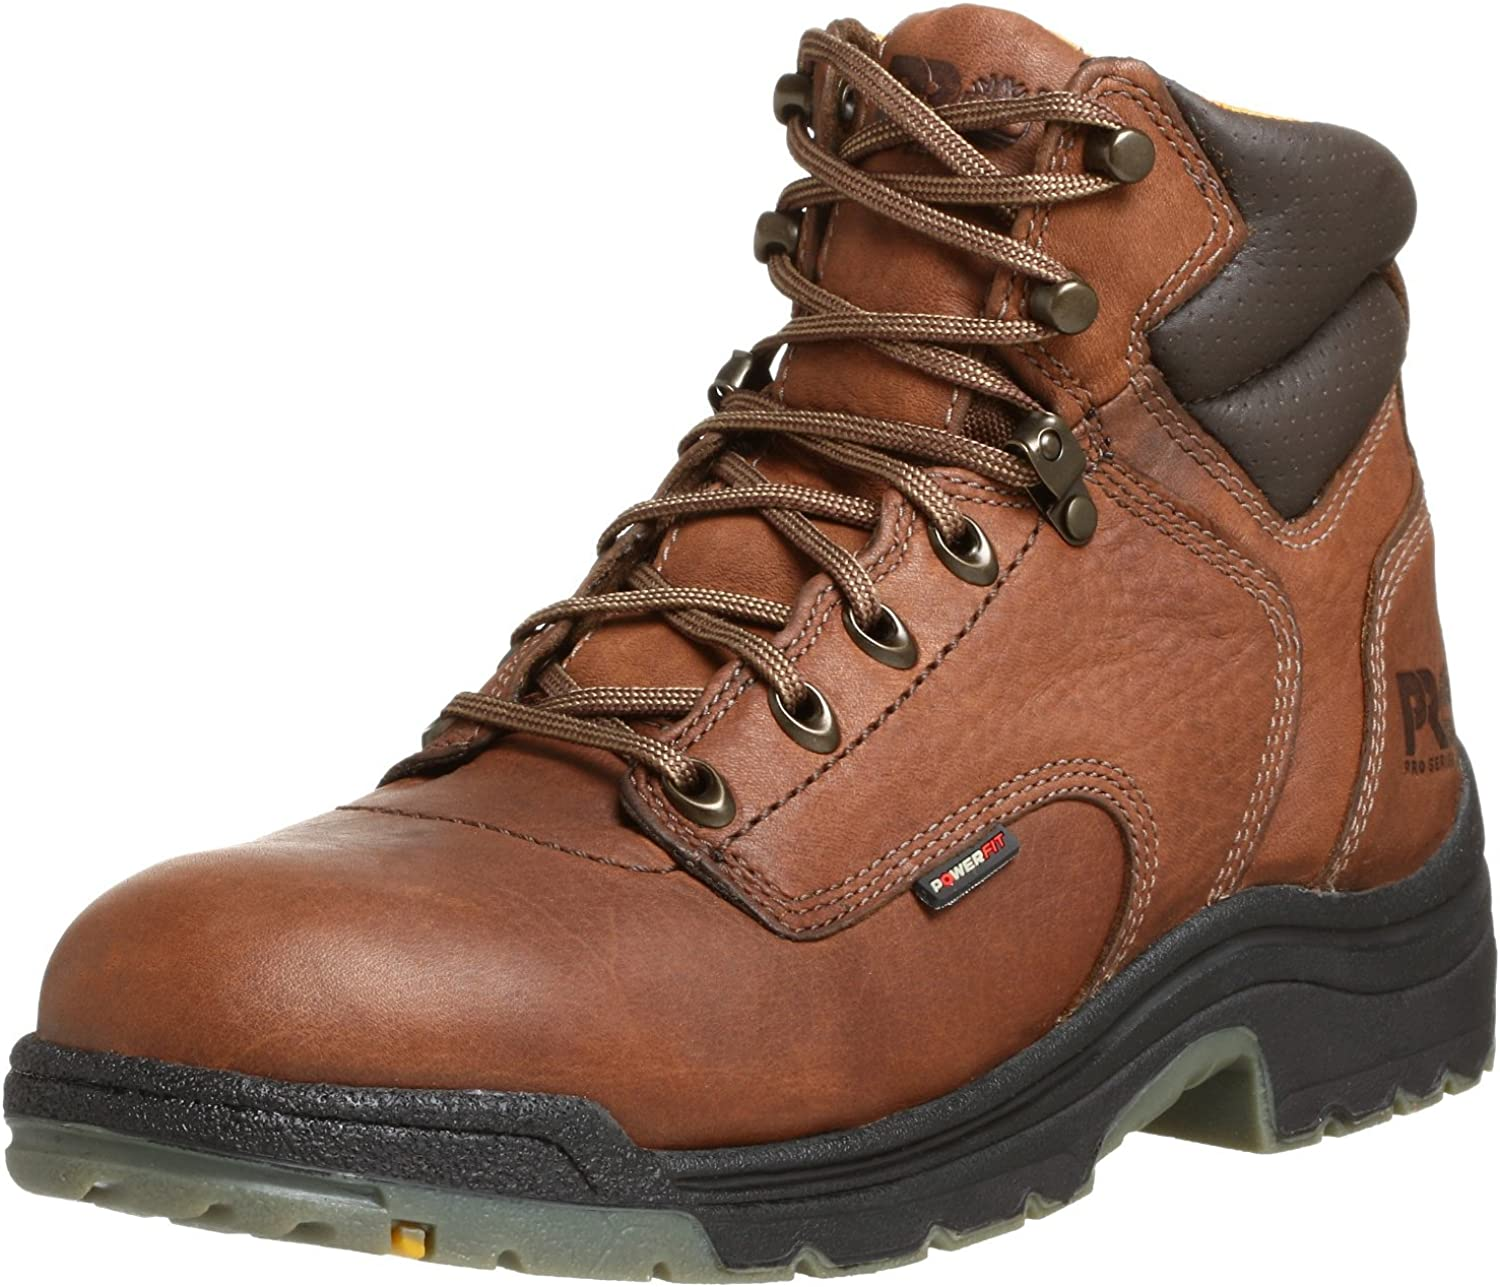 """Timberland PRO mens Titan? 6"""" Soft Toe industrial and construction shoes, Coffee/Brown, 8.5 US: Shoes"""